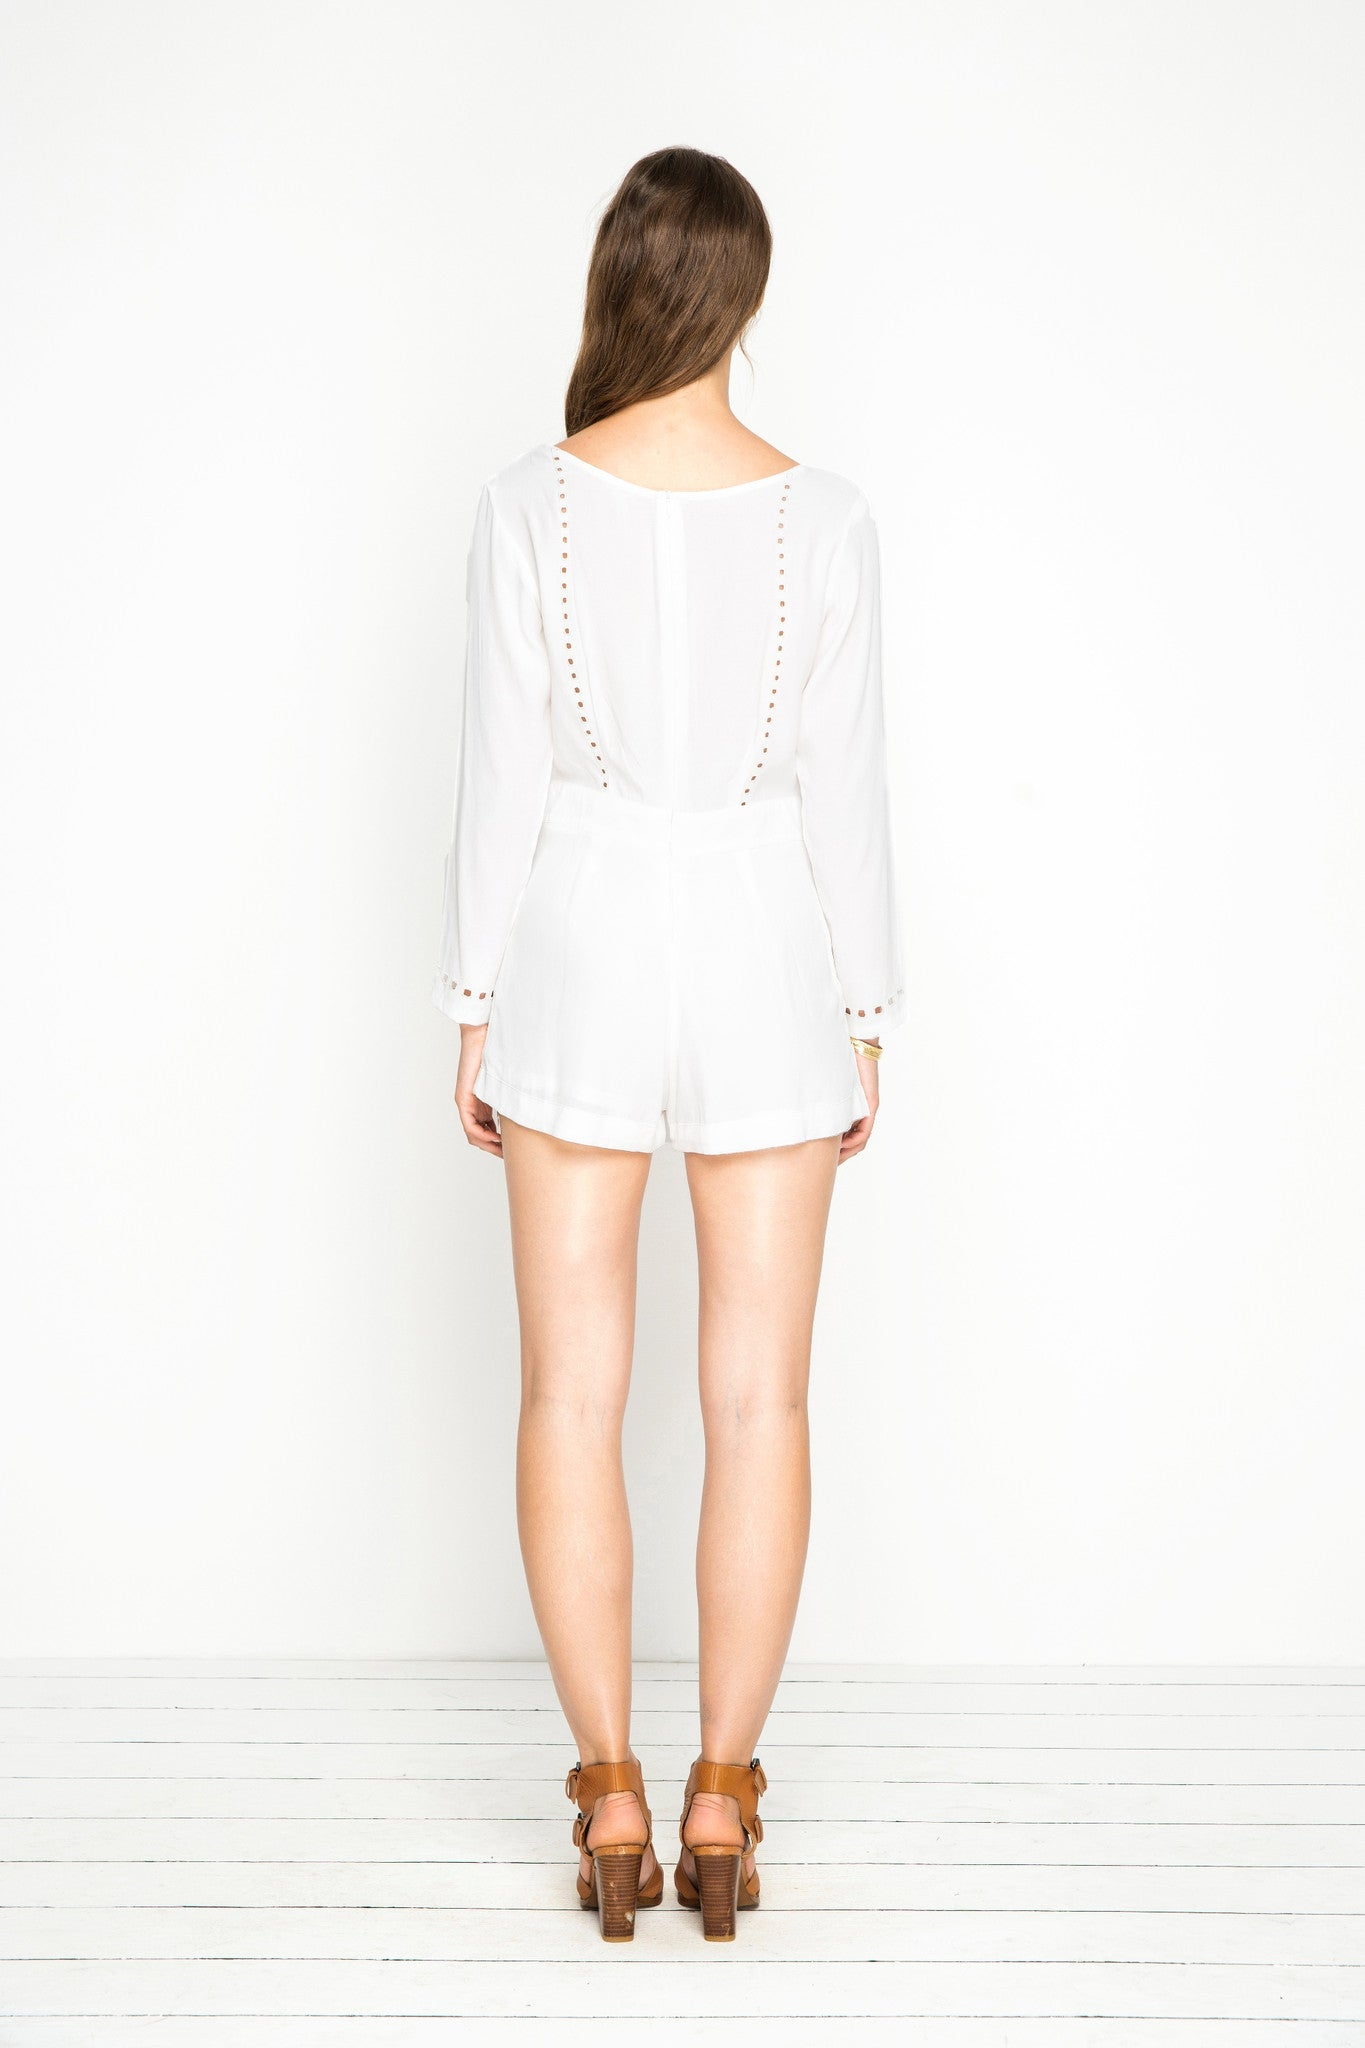 Bird & Kite Heyday Playsuit